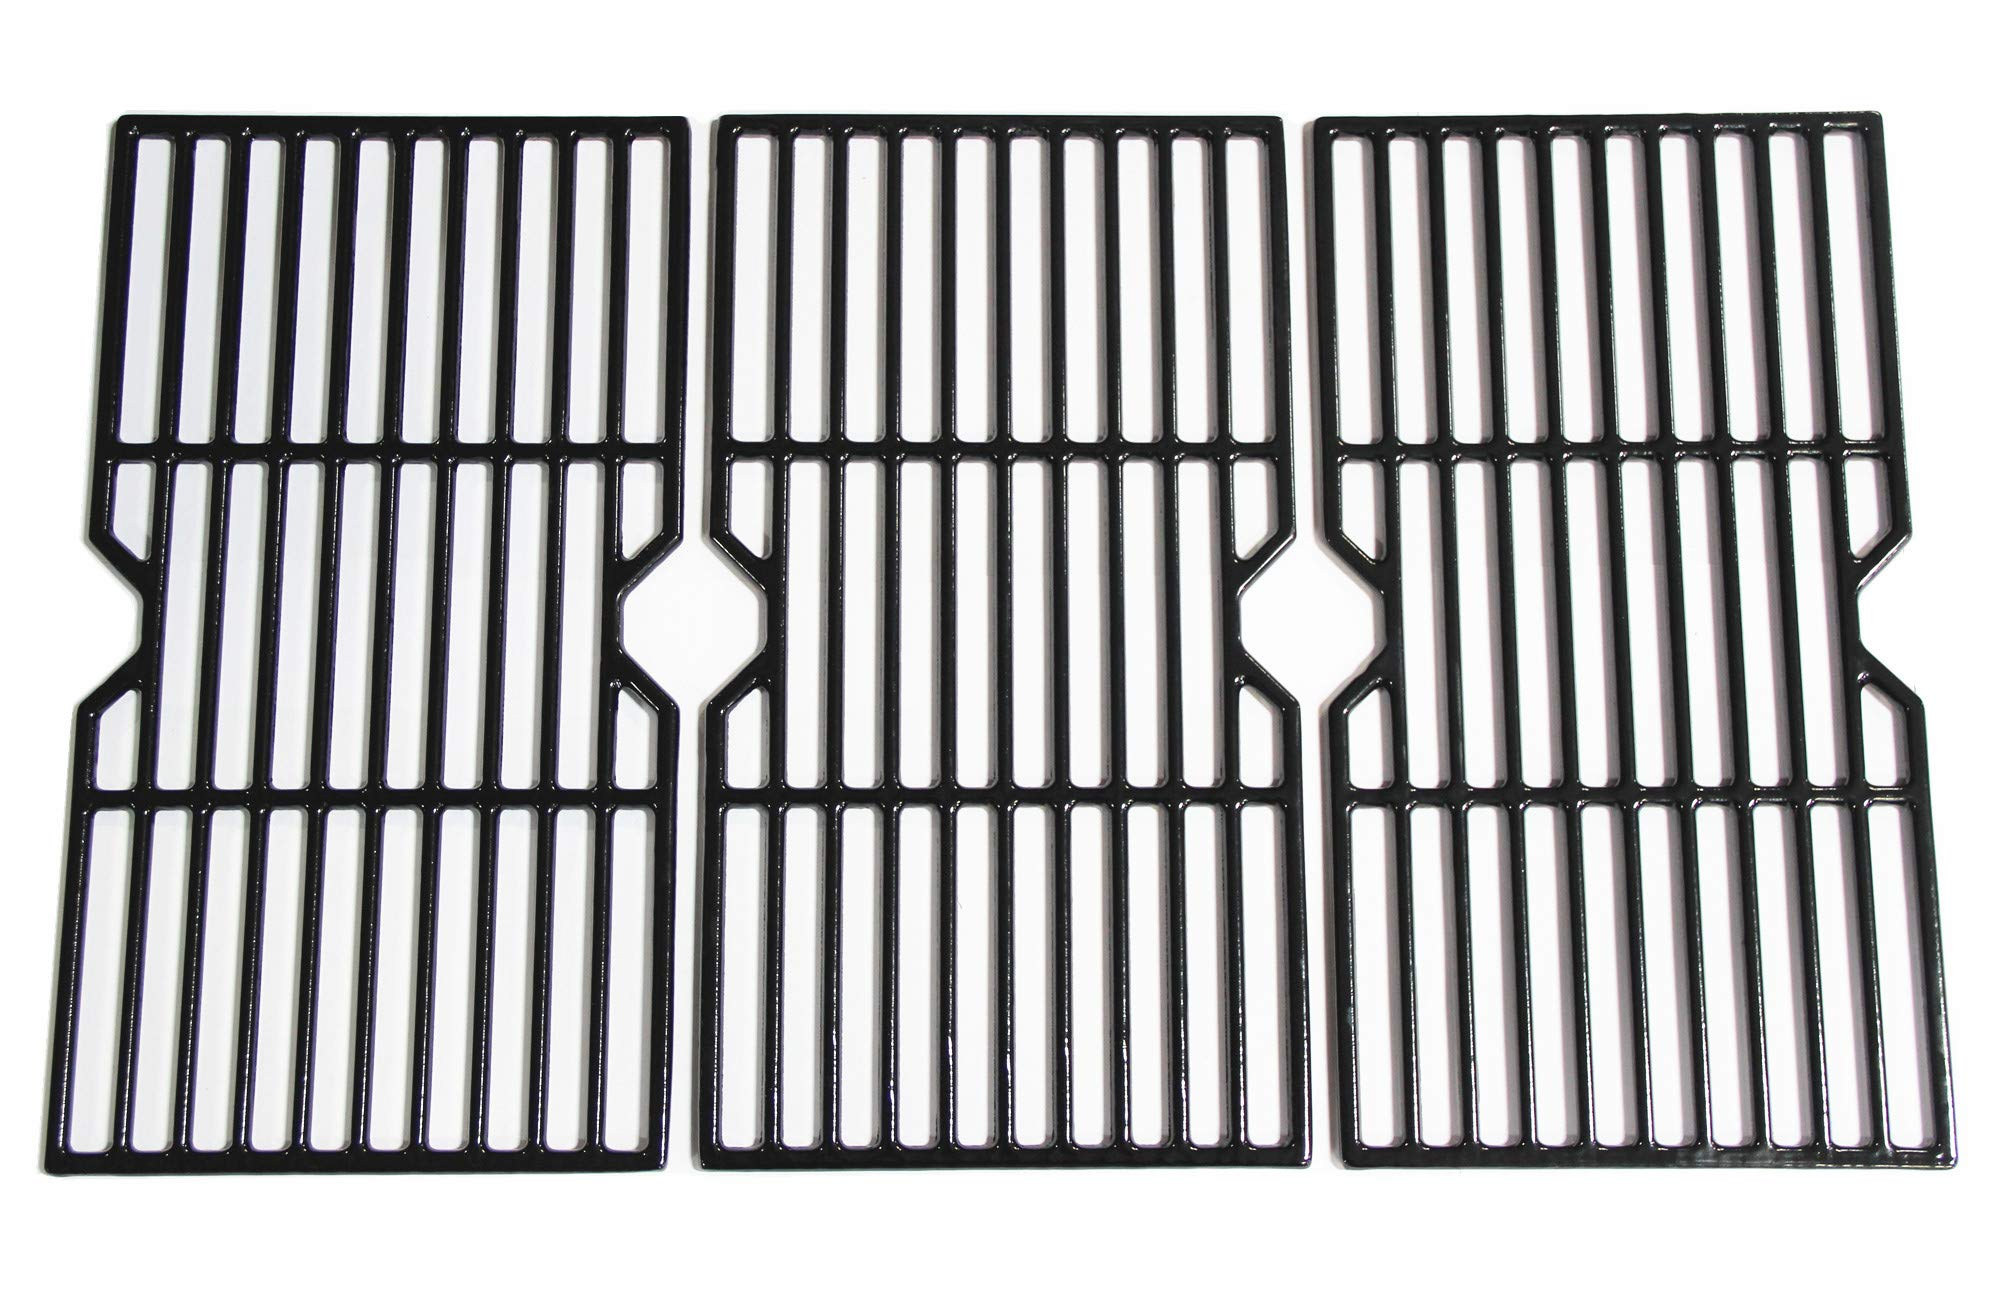 Mr. KAN Grill Grid Grates Replacement for Charbroil, Master Chef, Backyard Grill, Kenmore Sears Gas Grills, Set of 3-Piece Porcelain Coated Cast Iron Cooking Grids by Mr. KAN